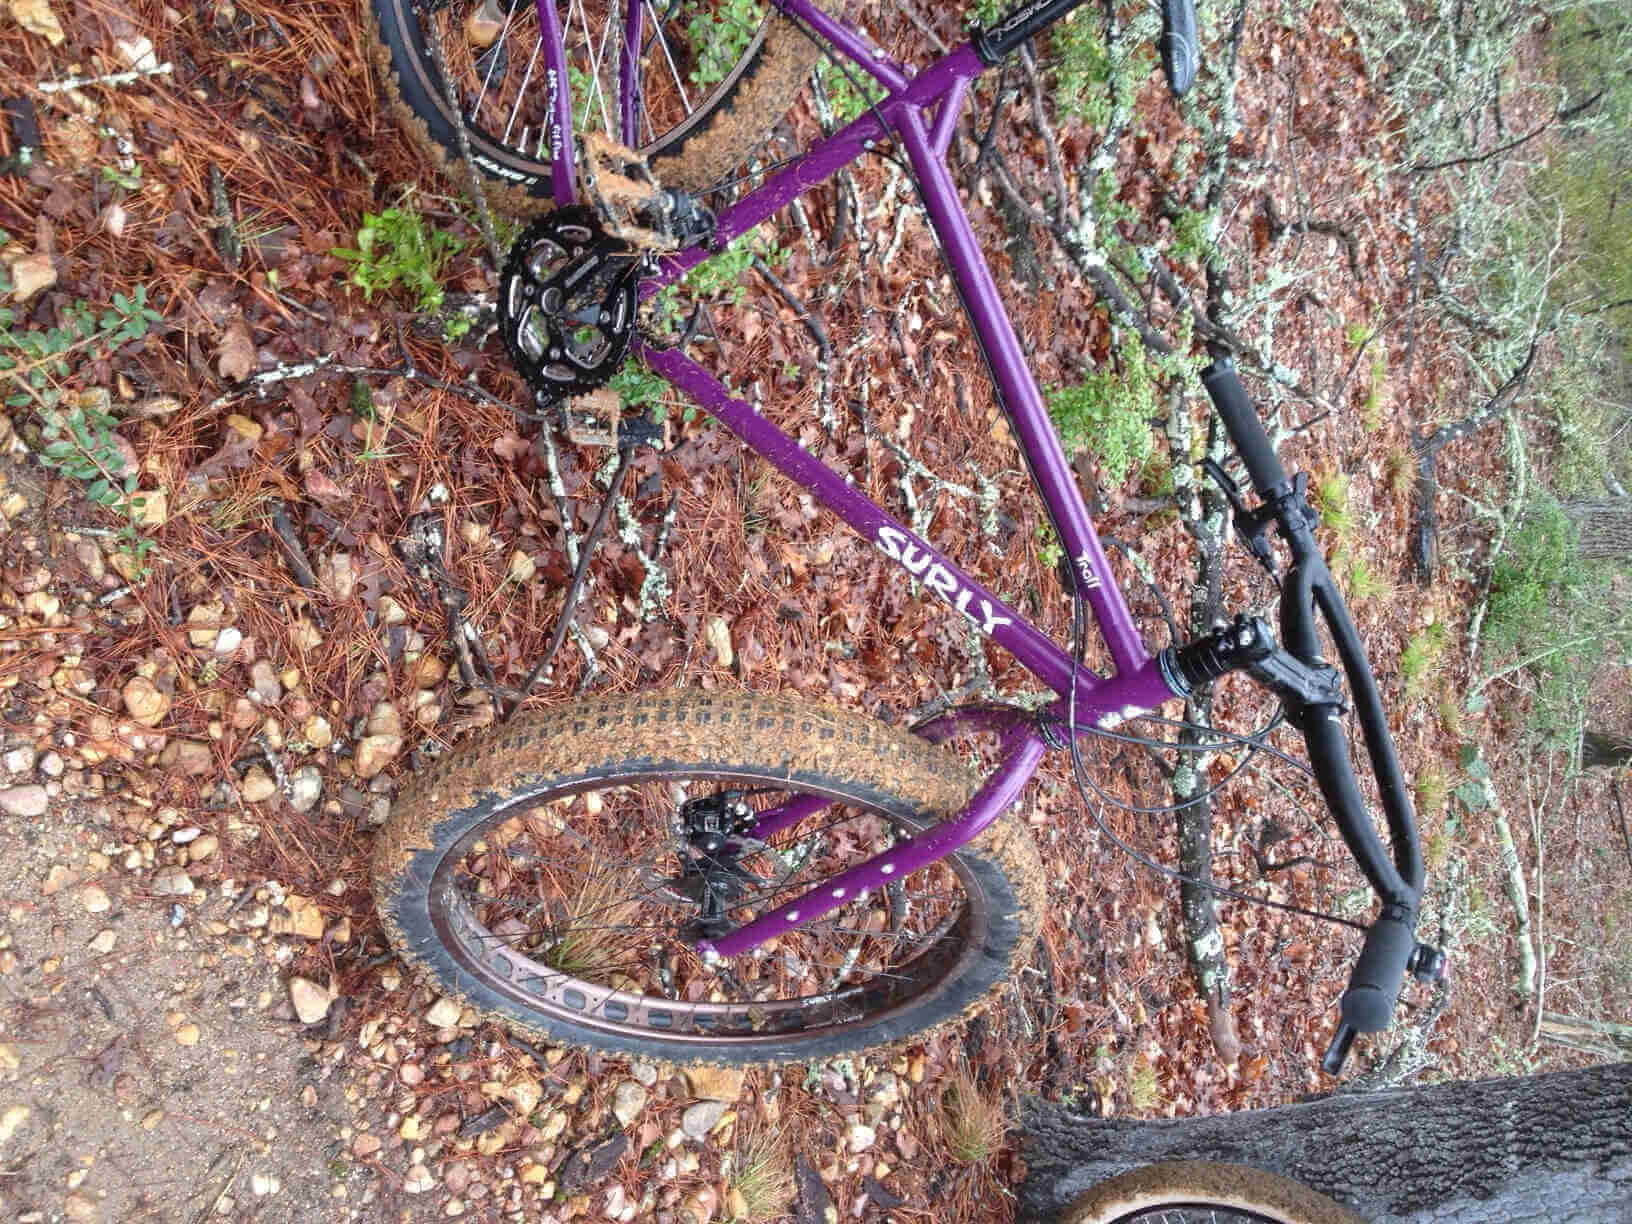 Image rotated 90 degrees clockwise - Right side view of a purple Surly Troll bike, parked on pine needles in the woods